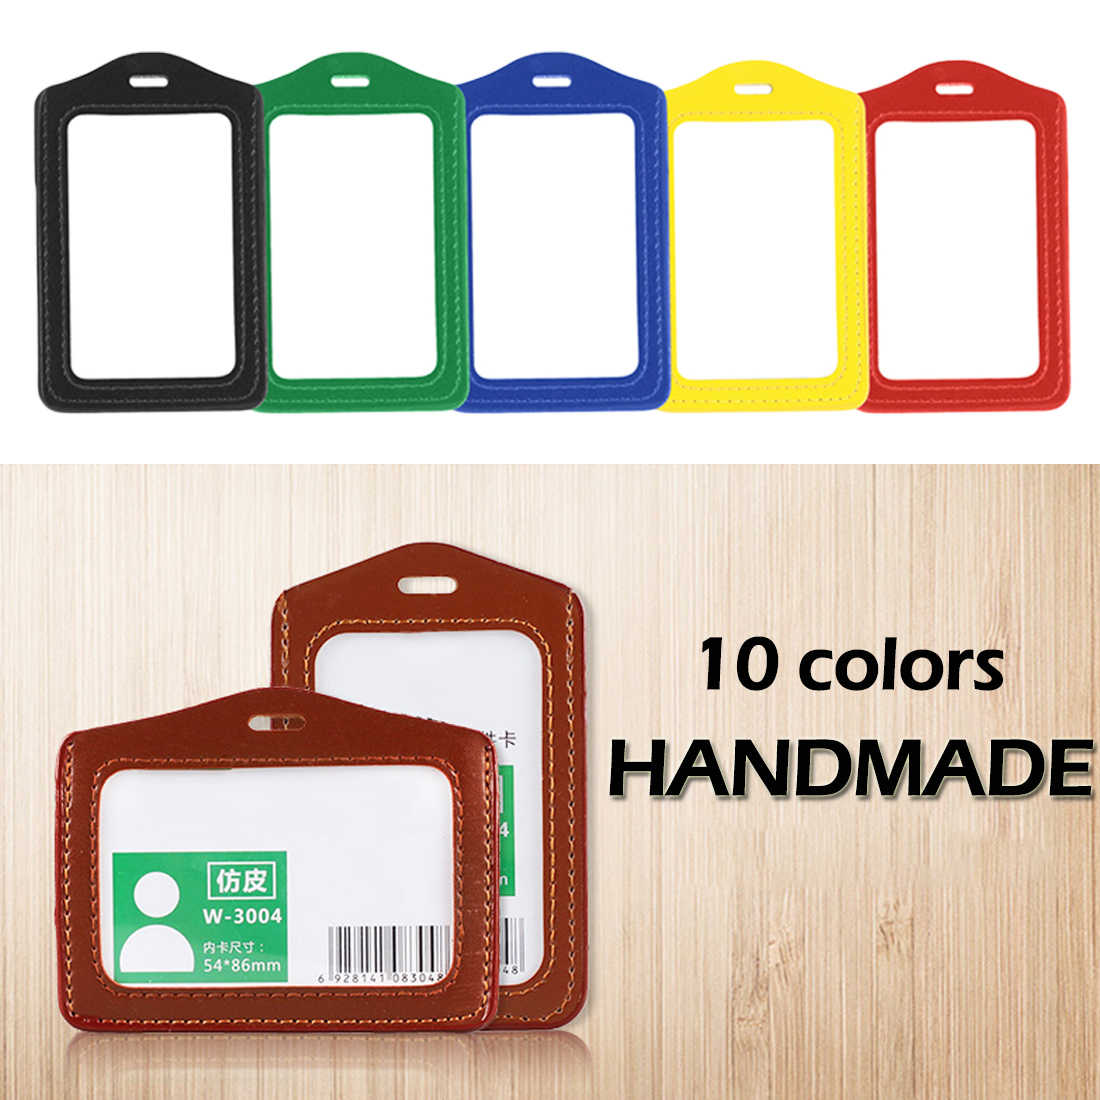 PU Leather ID Badge Case Clear and Color Border Lanyard Holes Bank Credit Card Holders ID Badge Holders Accessories